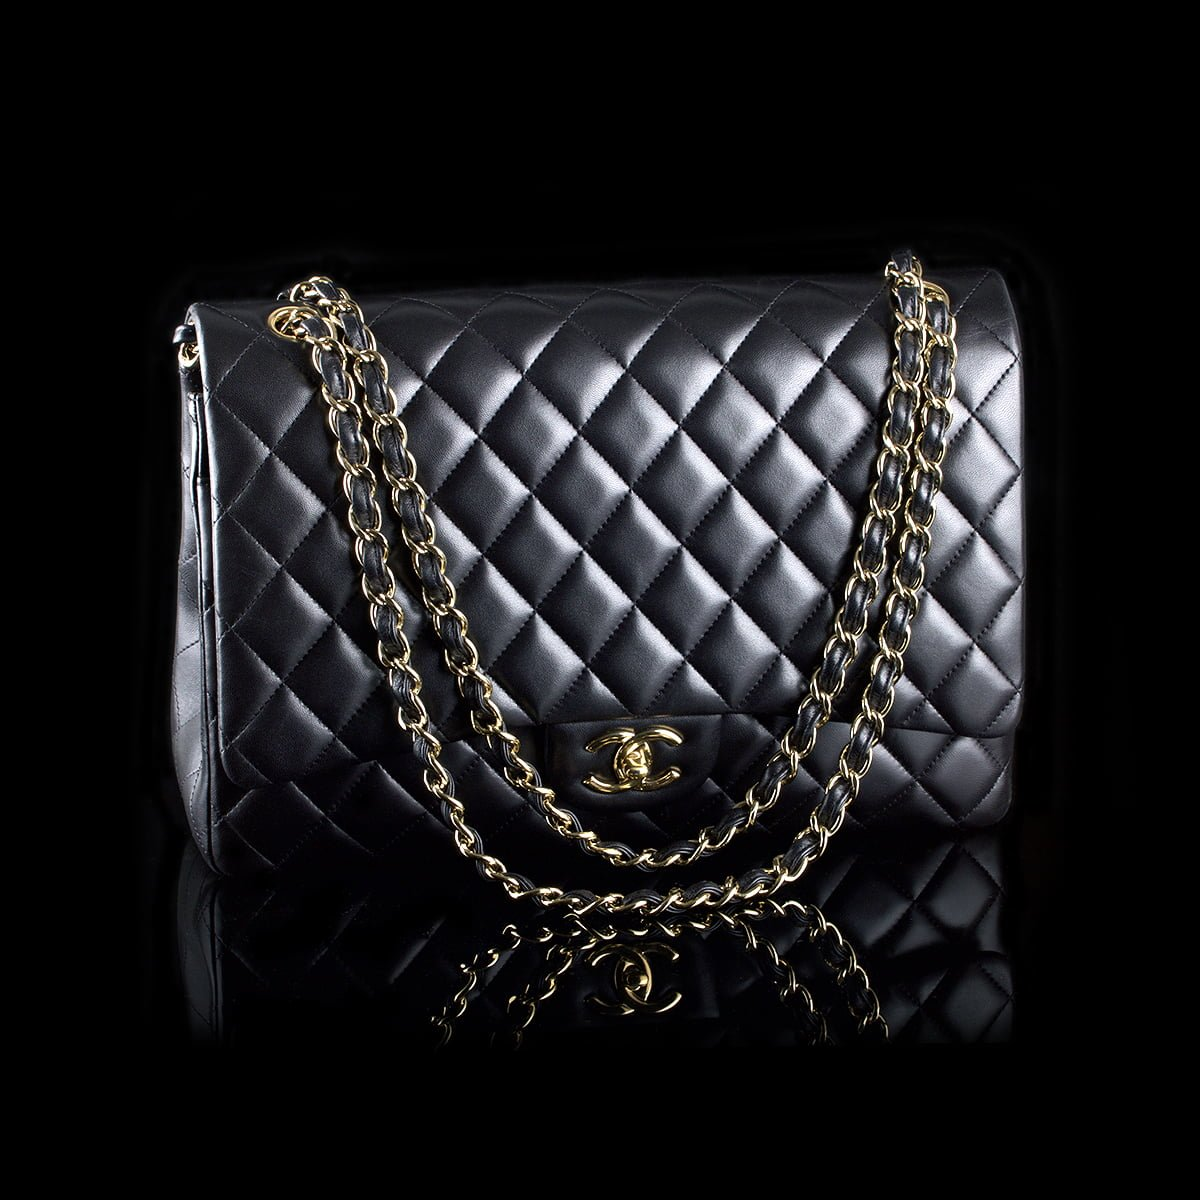 47e996305447 Chanel Maxi Double Flap Black Lambskin Golden Hardware - Classic390